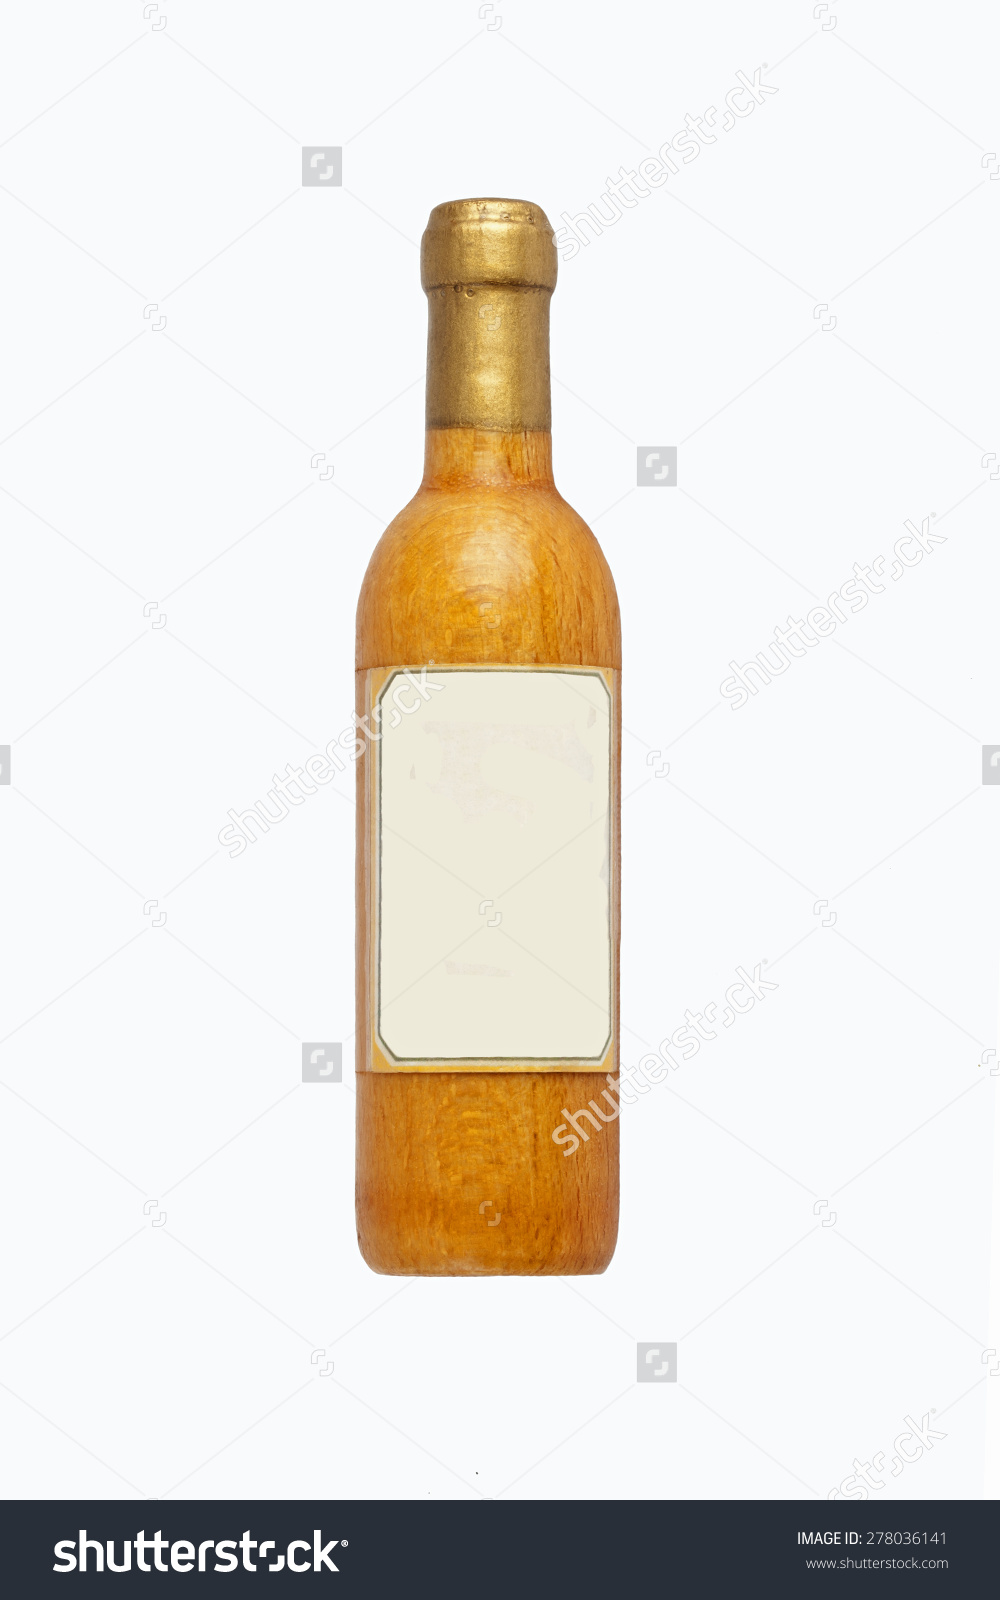 label design isolated on white background Add or write your own text 1000x1600